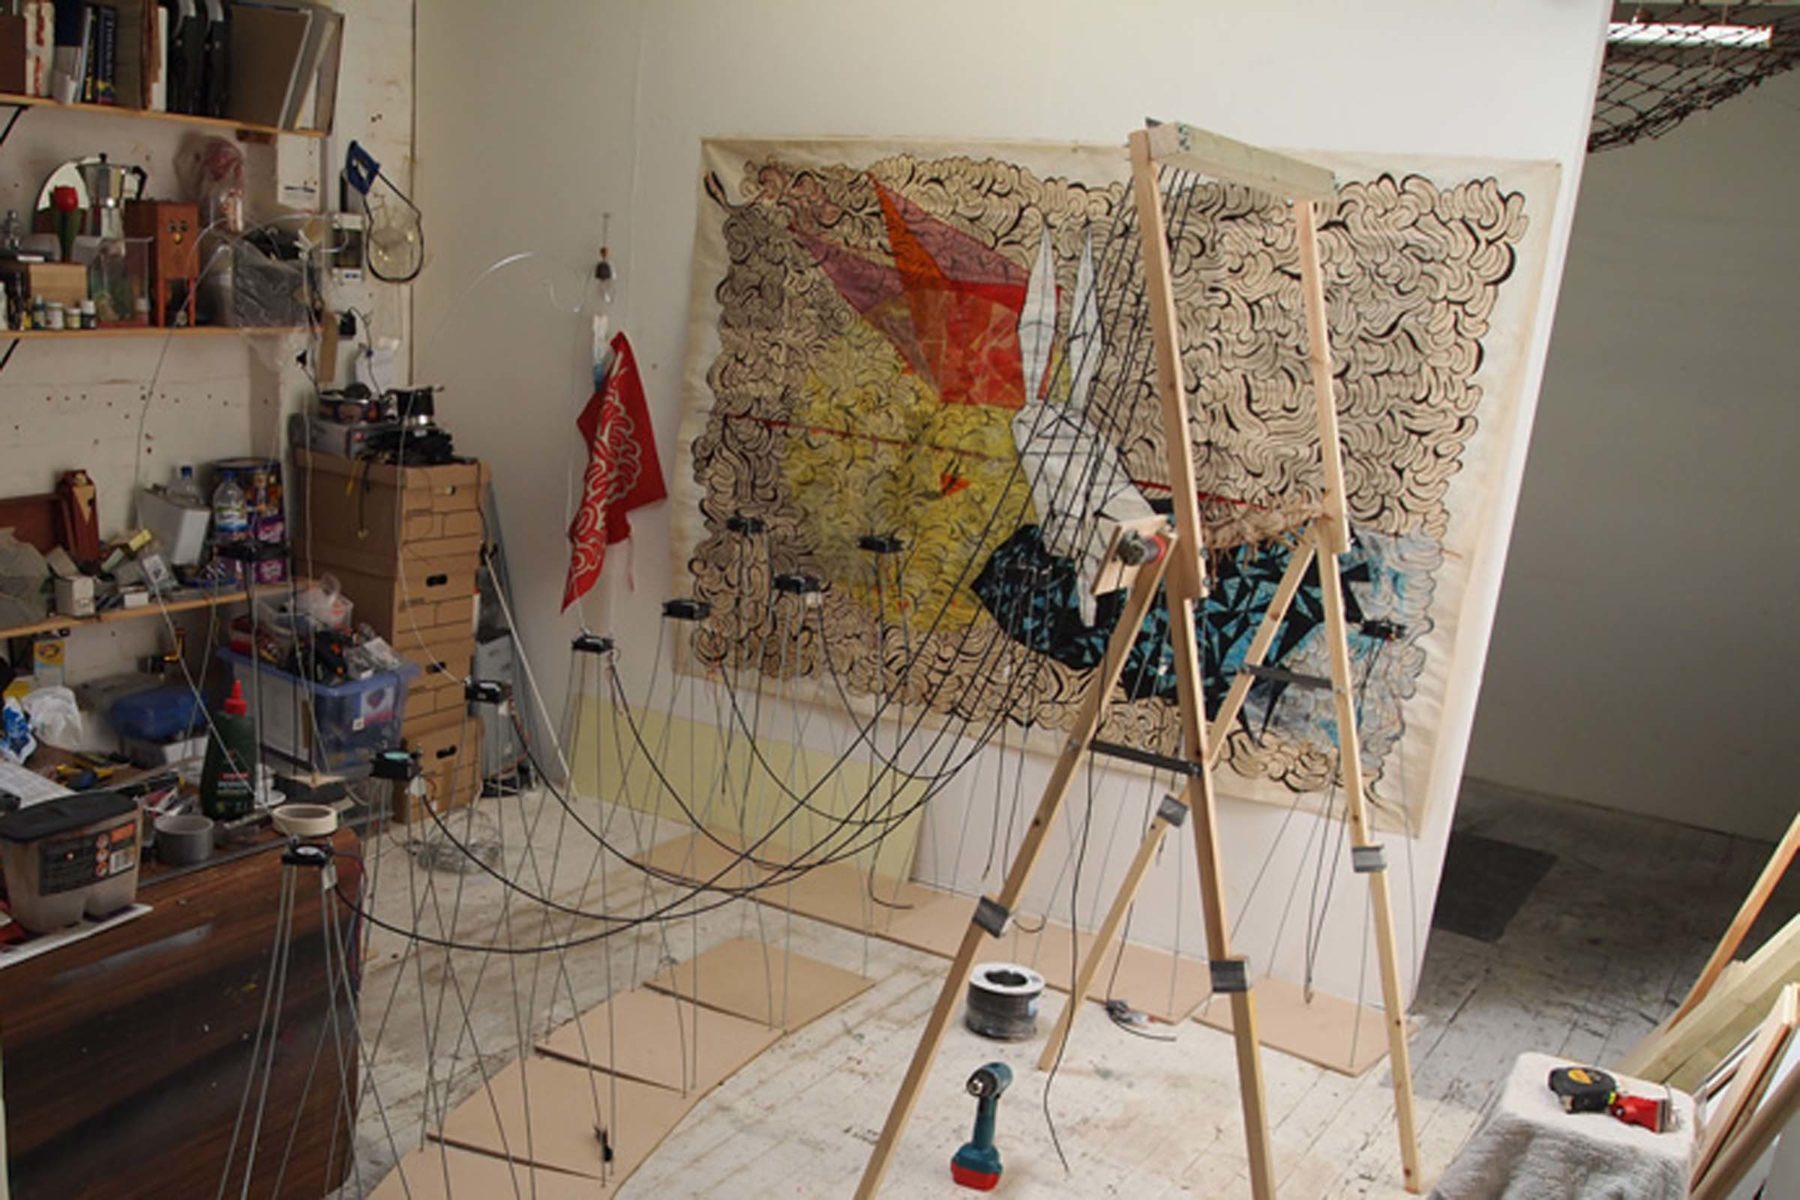 Leonardo Ulian, From zero to one, 2011, mixed media, dimensions according to exhibiting space